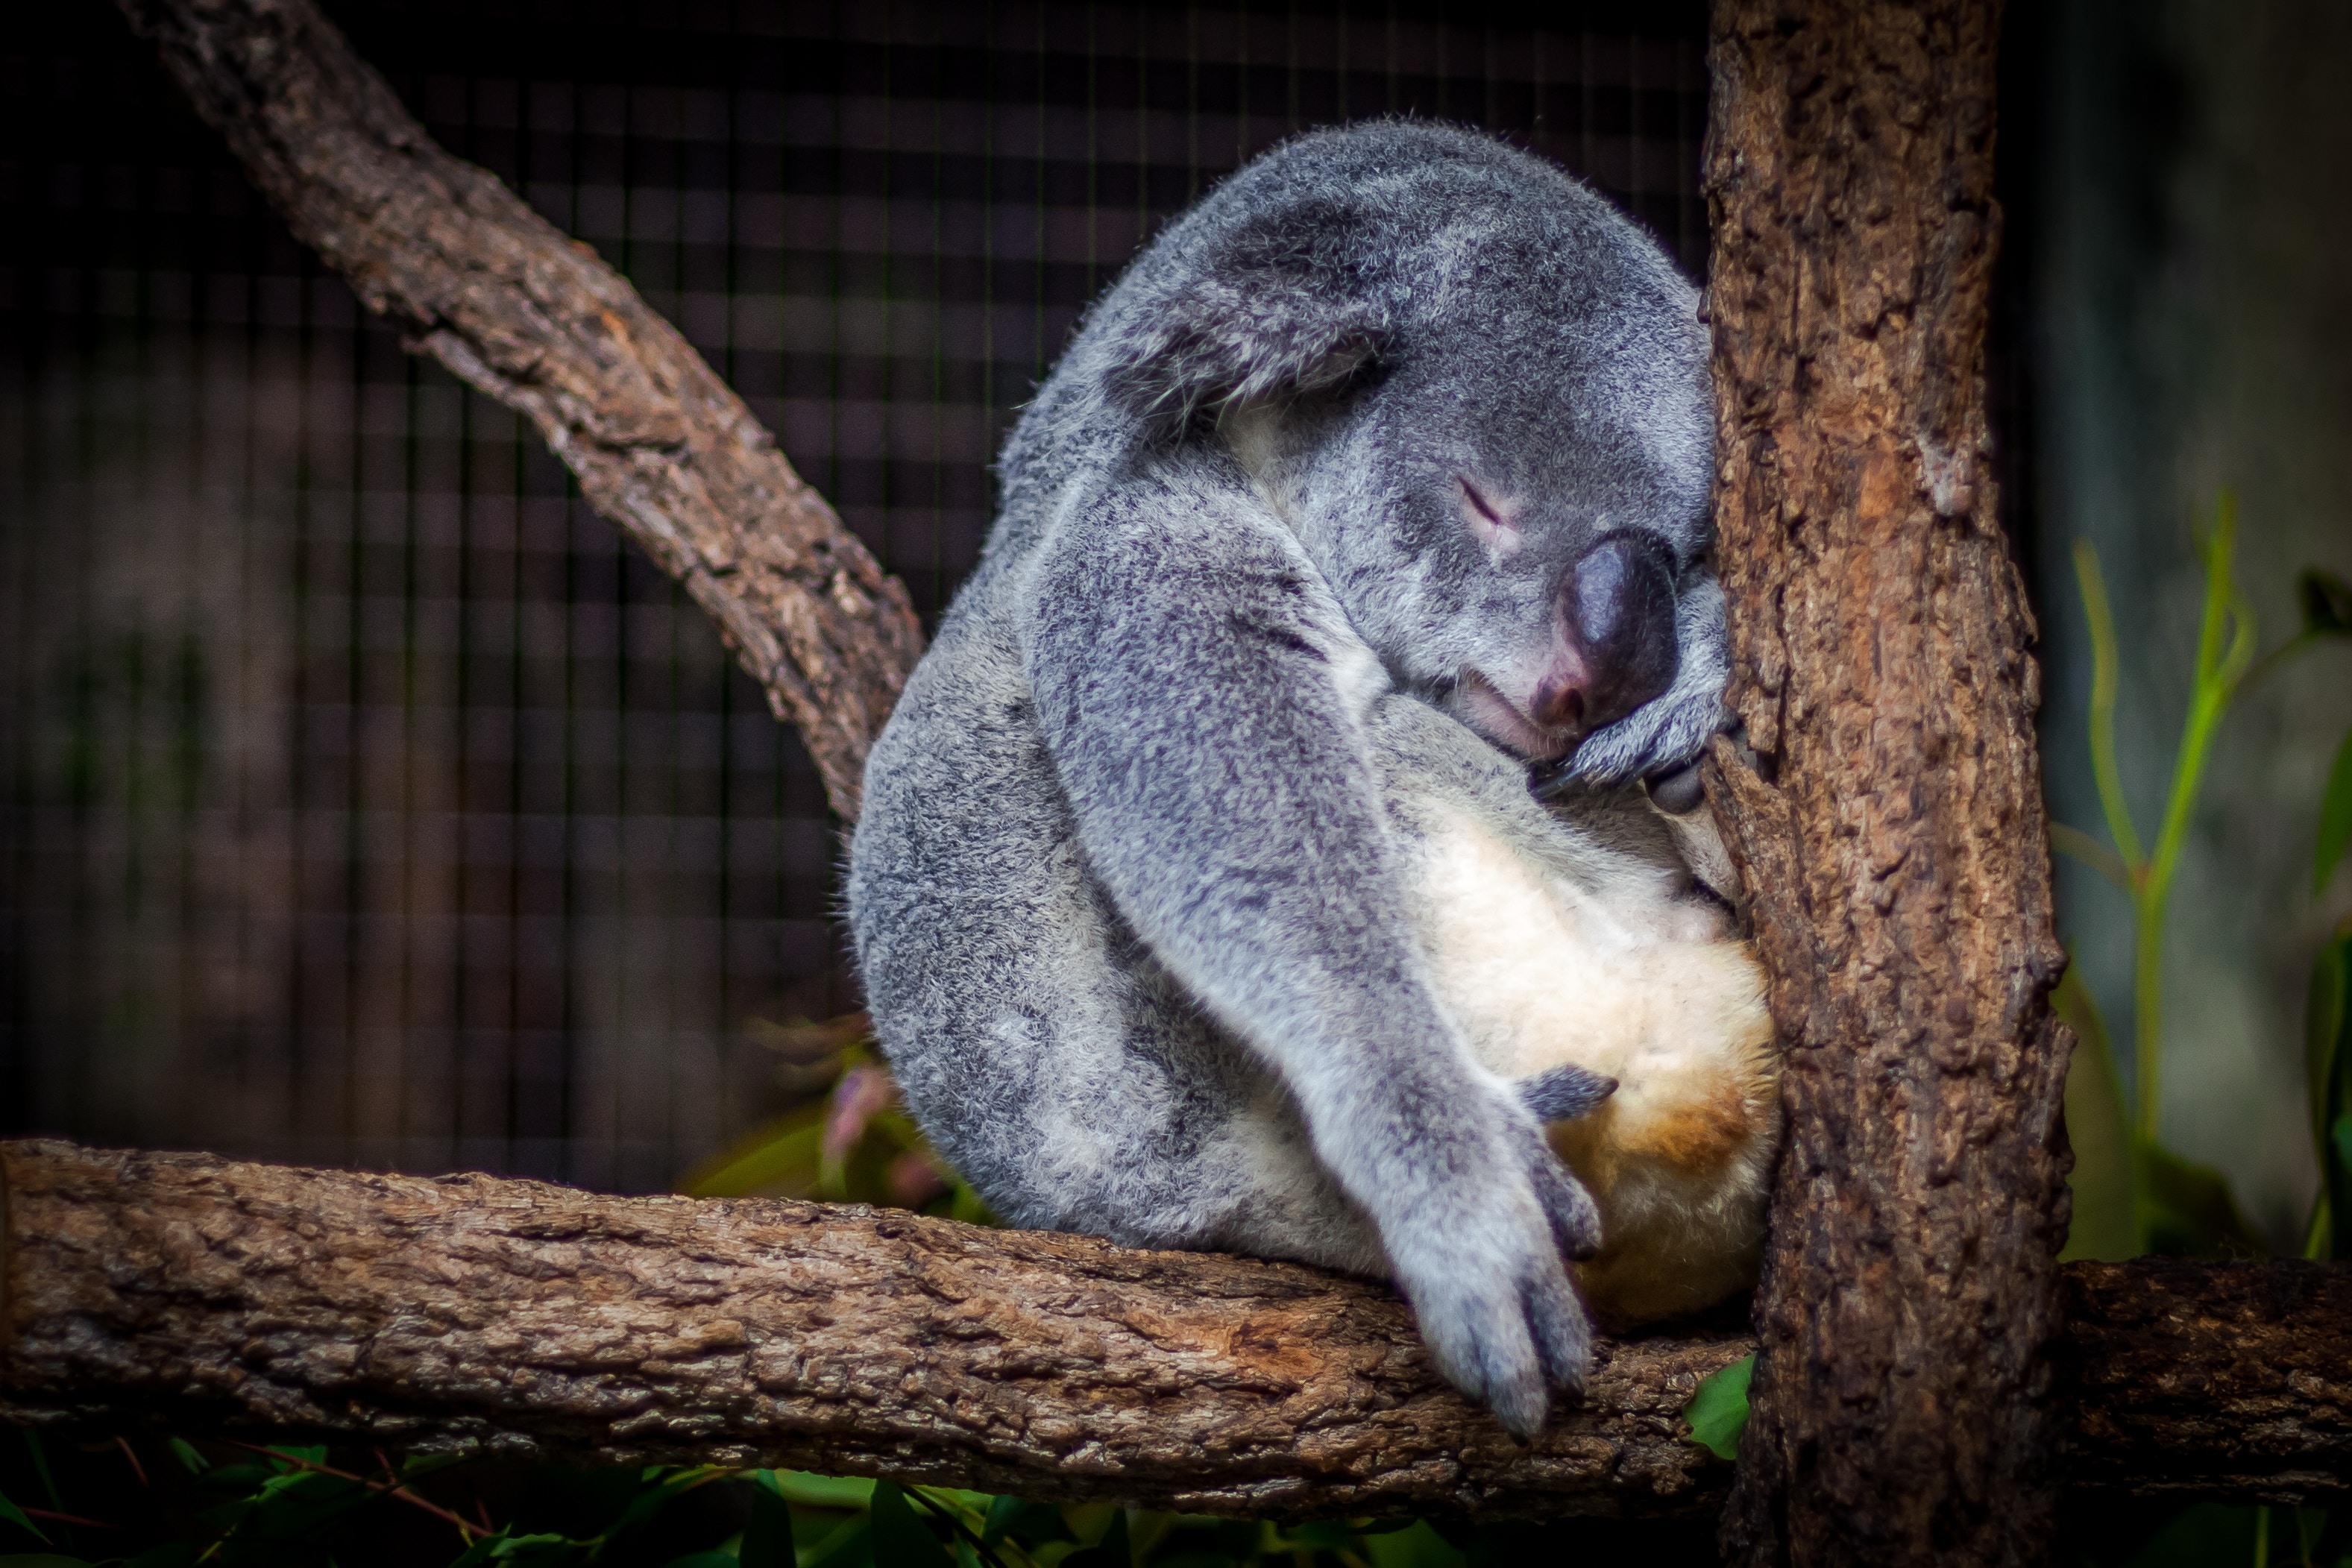 There are not enough adult koalas to breed another generation